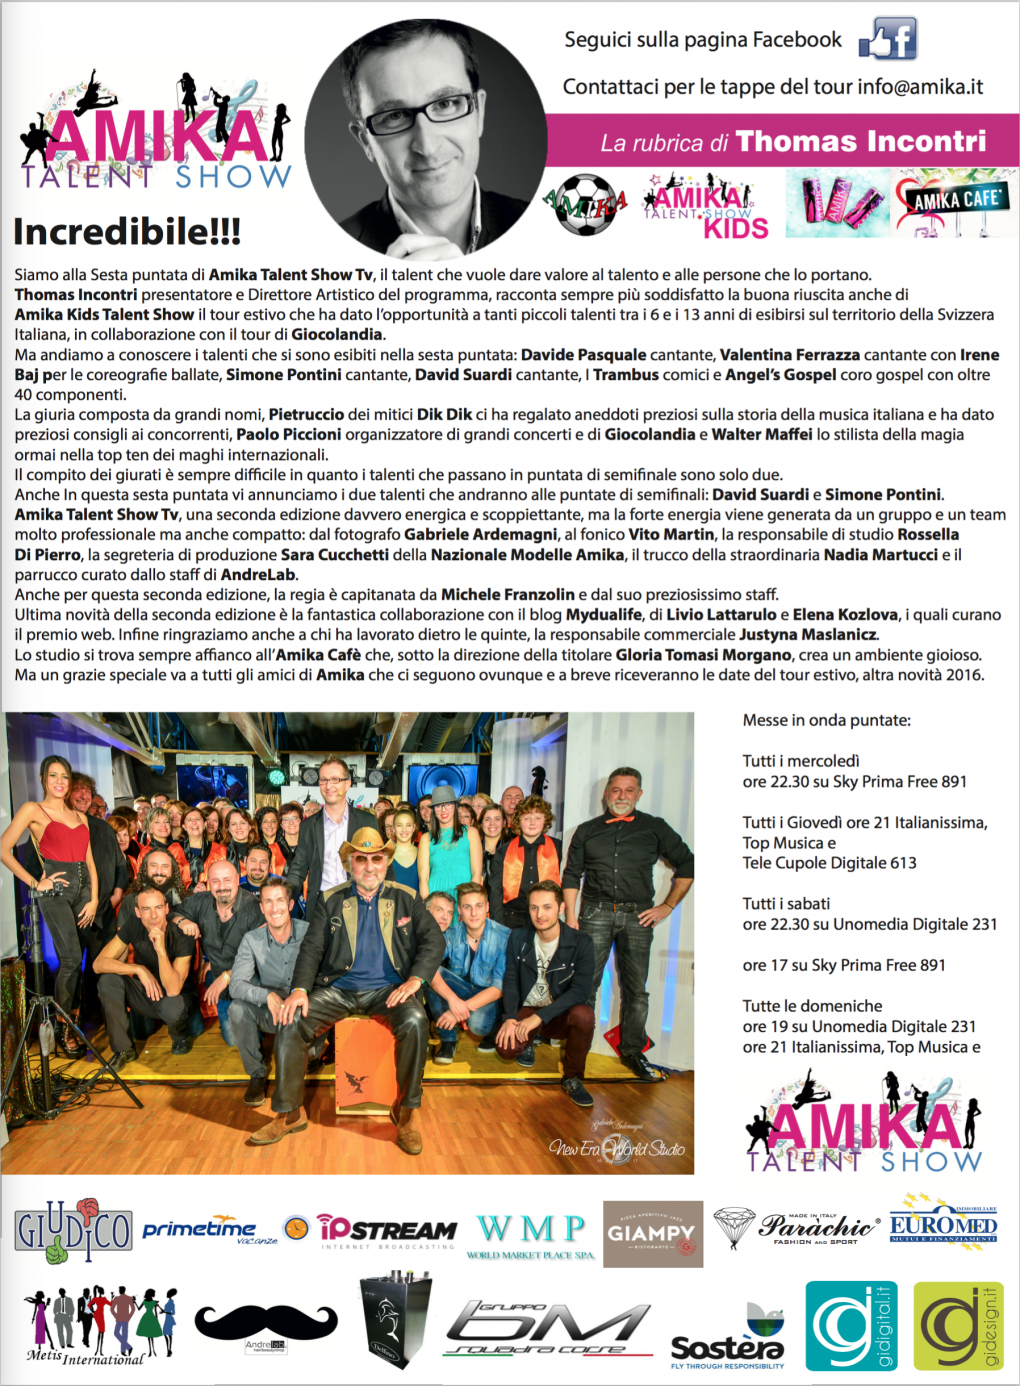 Vip 2016 Amika Talent Show 6 Foto by Gabriele Ardemagni